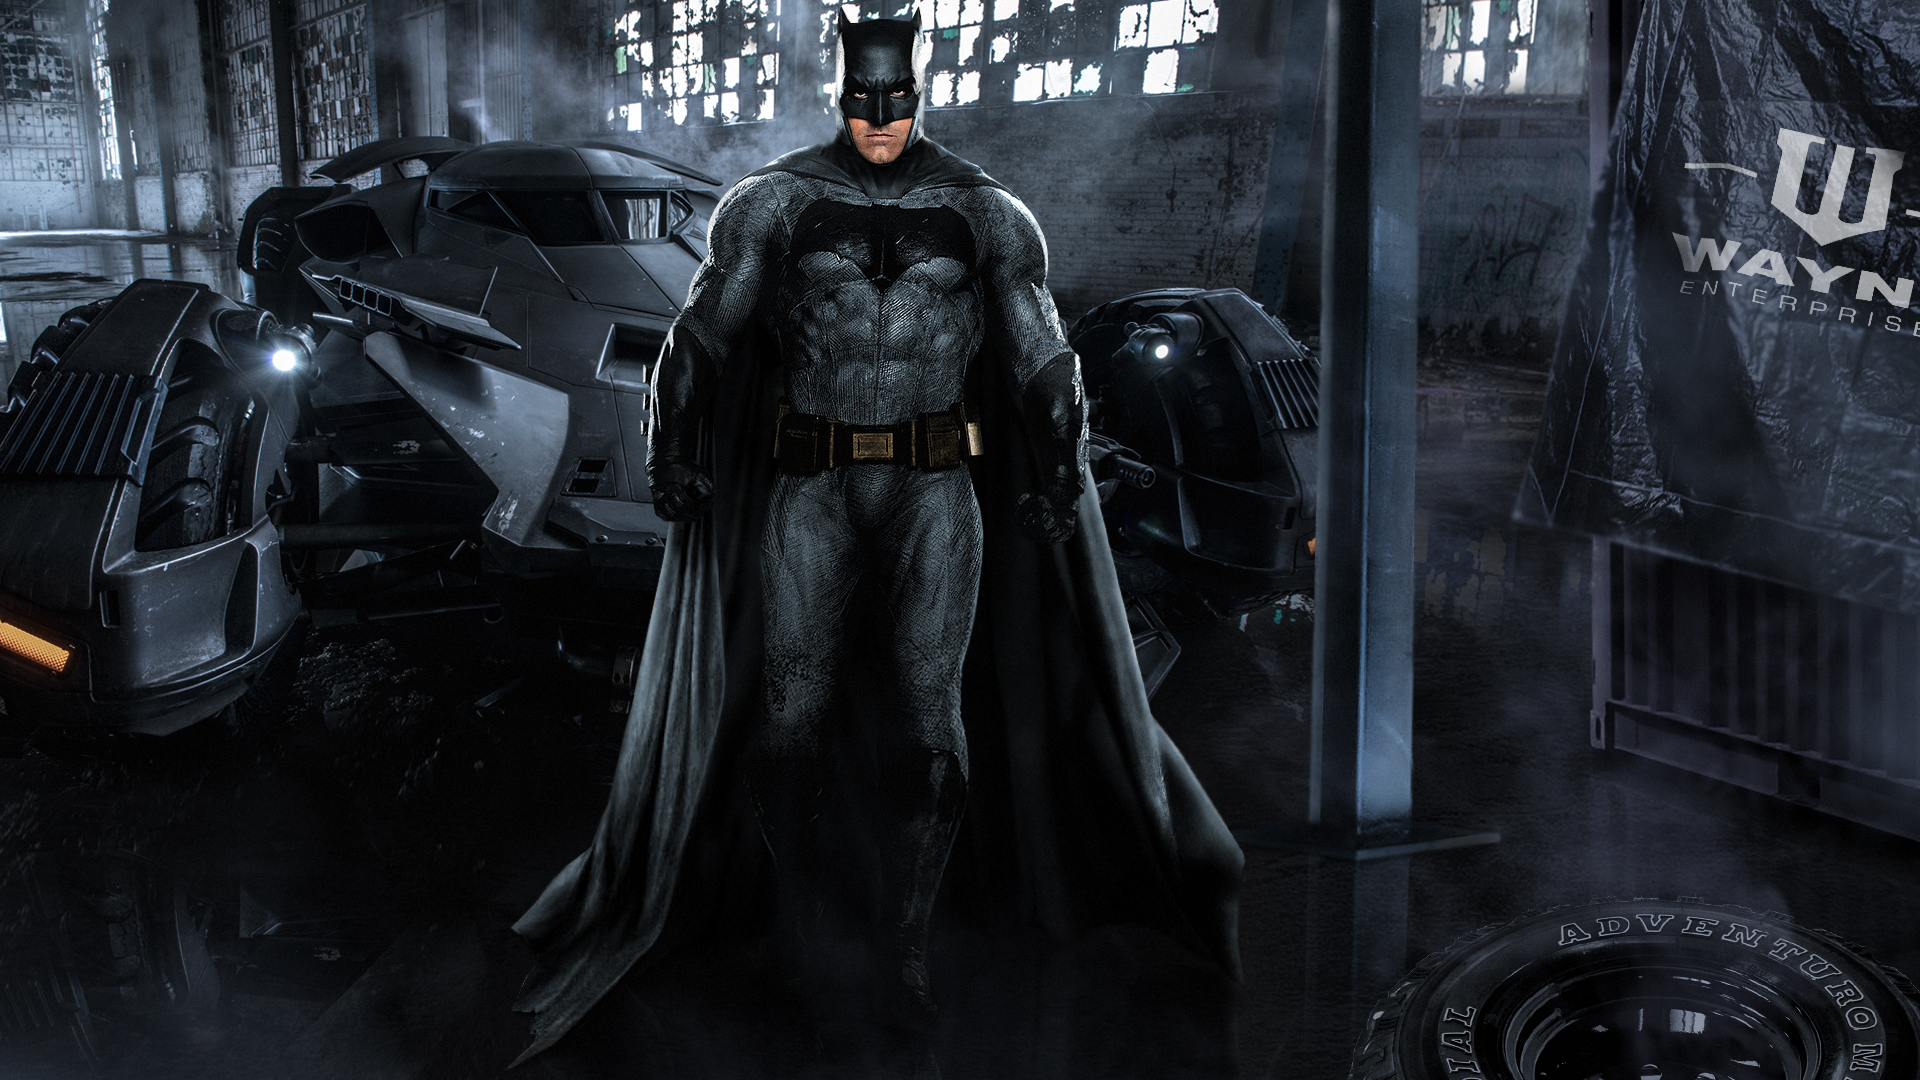 Batman-And-Superman-Dawn-Of-Justice-Backgrounds-HD-wallpaper-wpc5802522